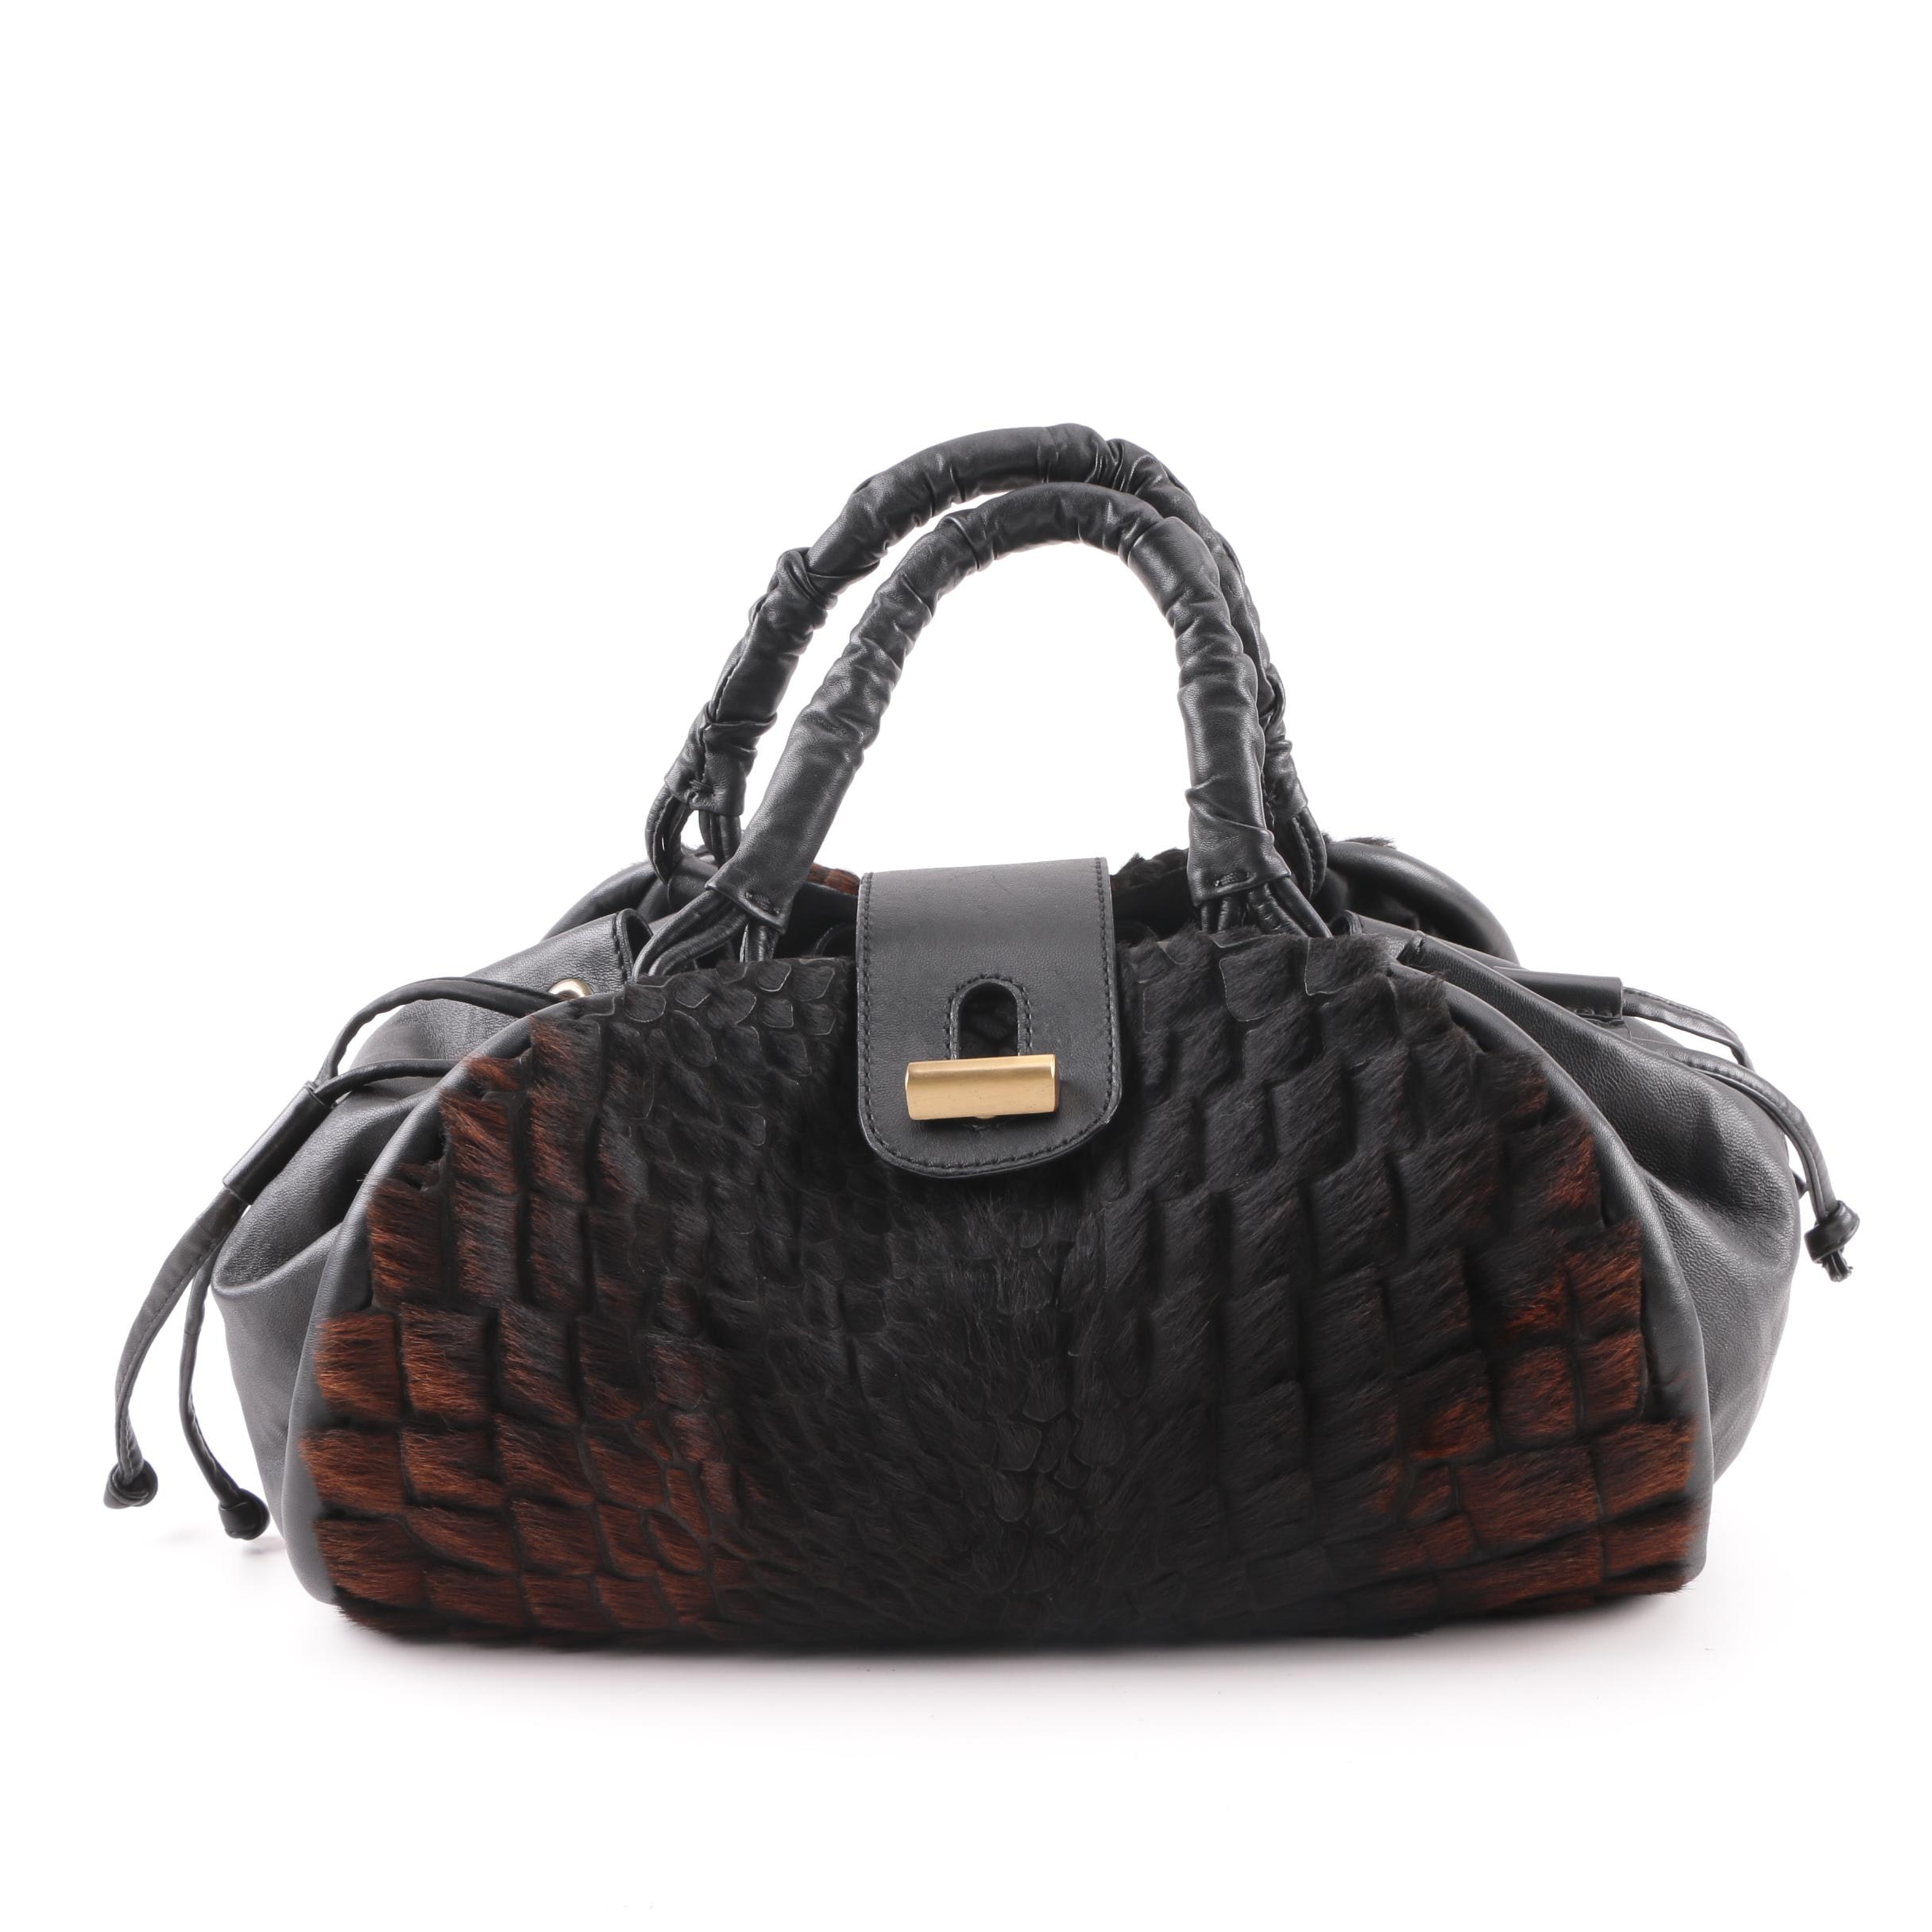 Piazza Sempione Leather and Calf Hair Satchel